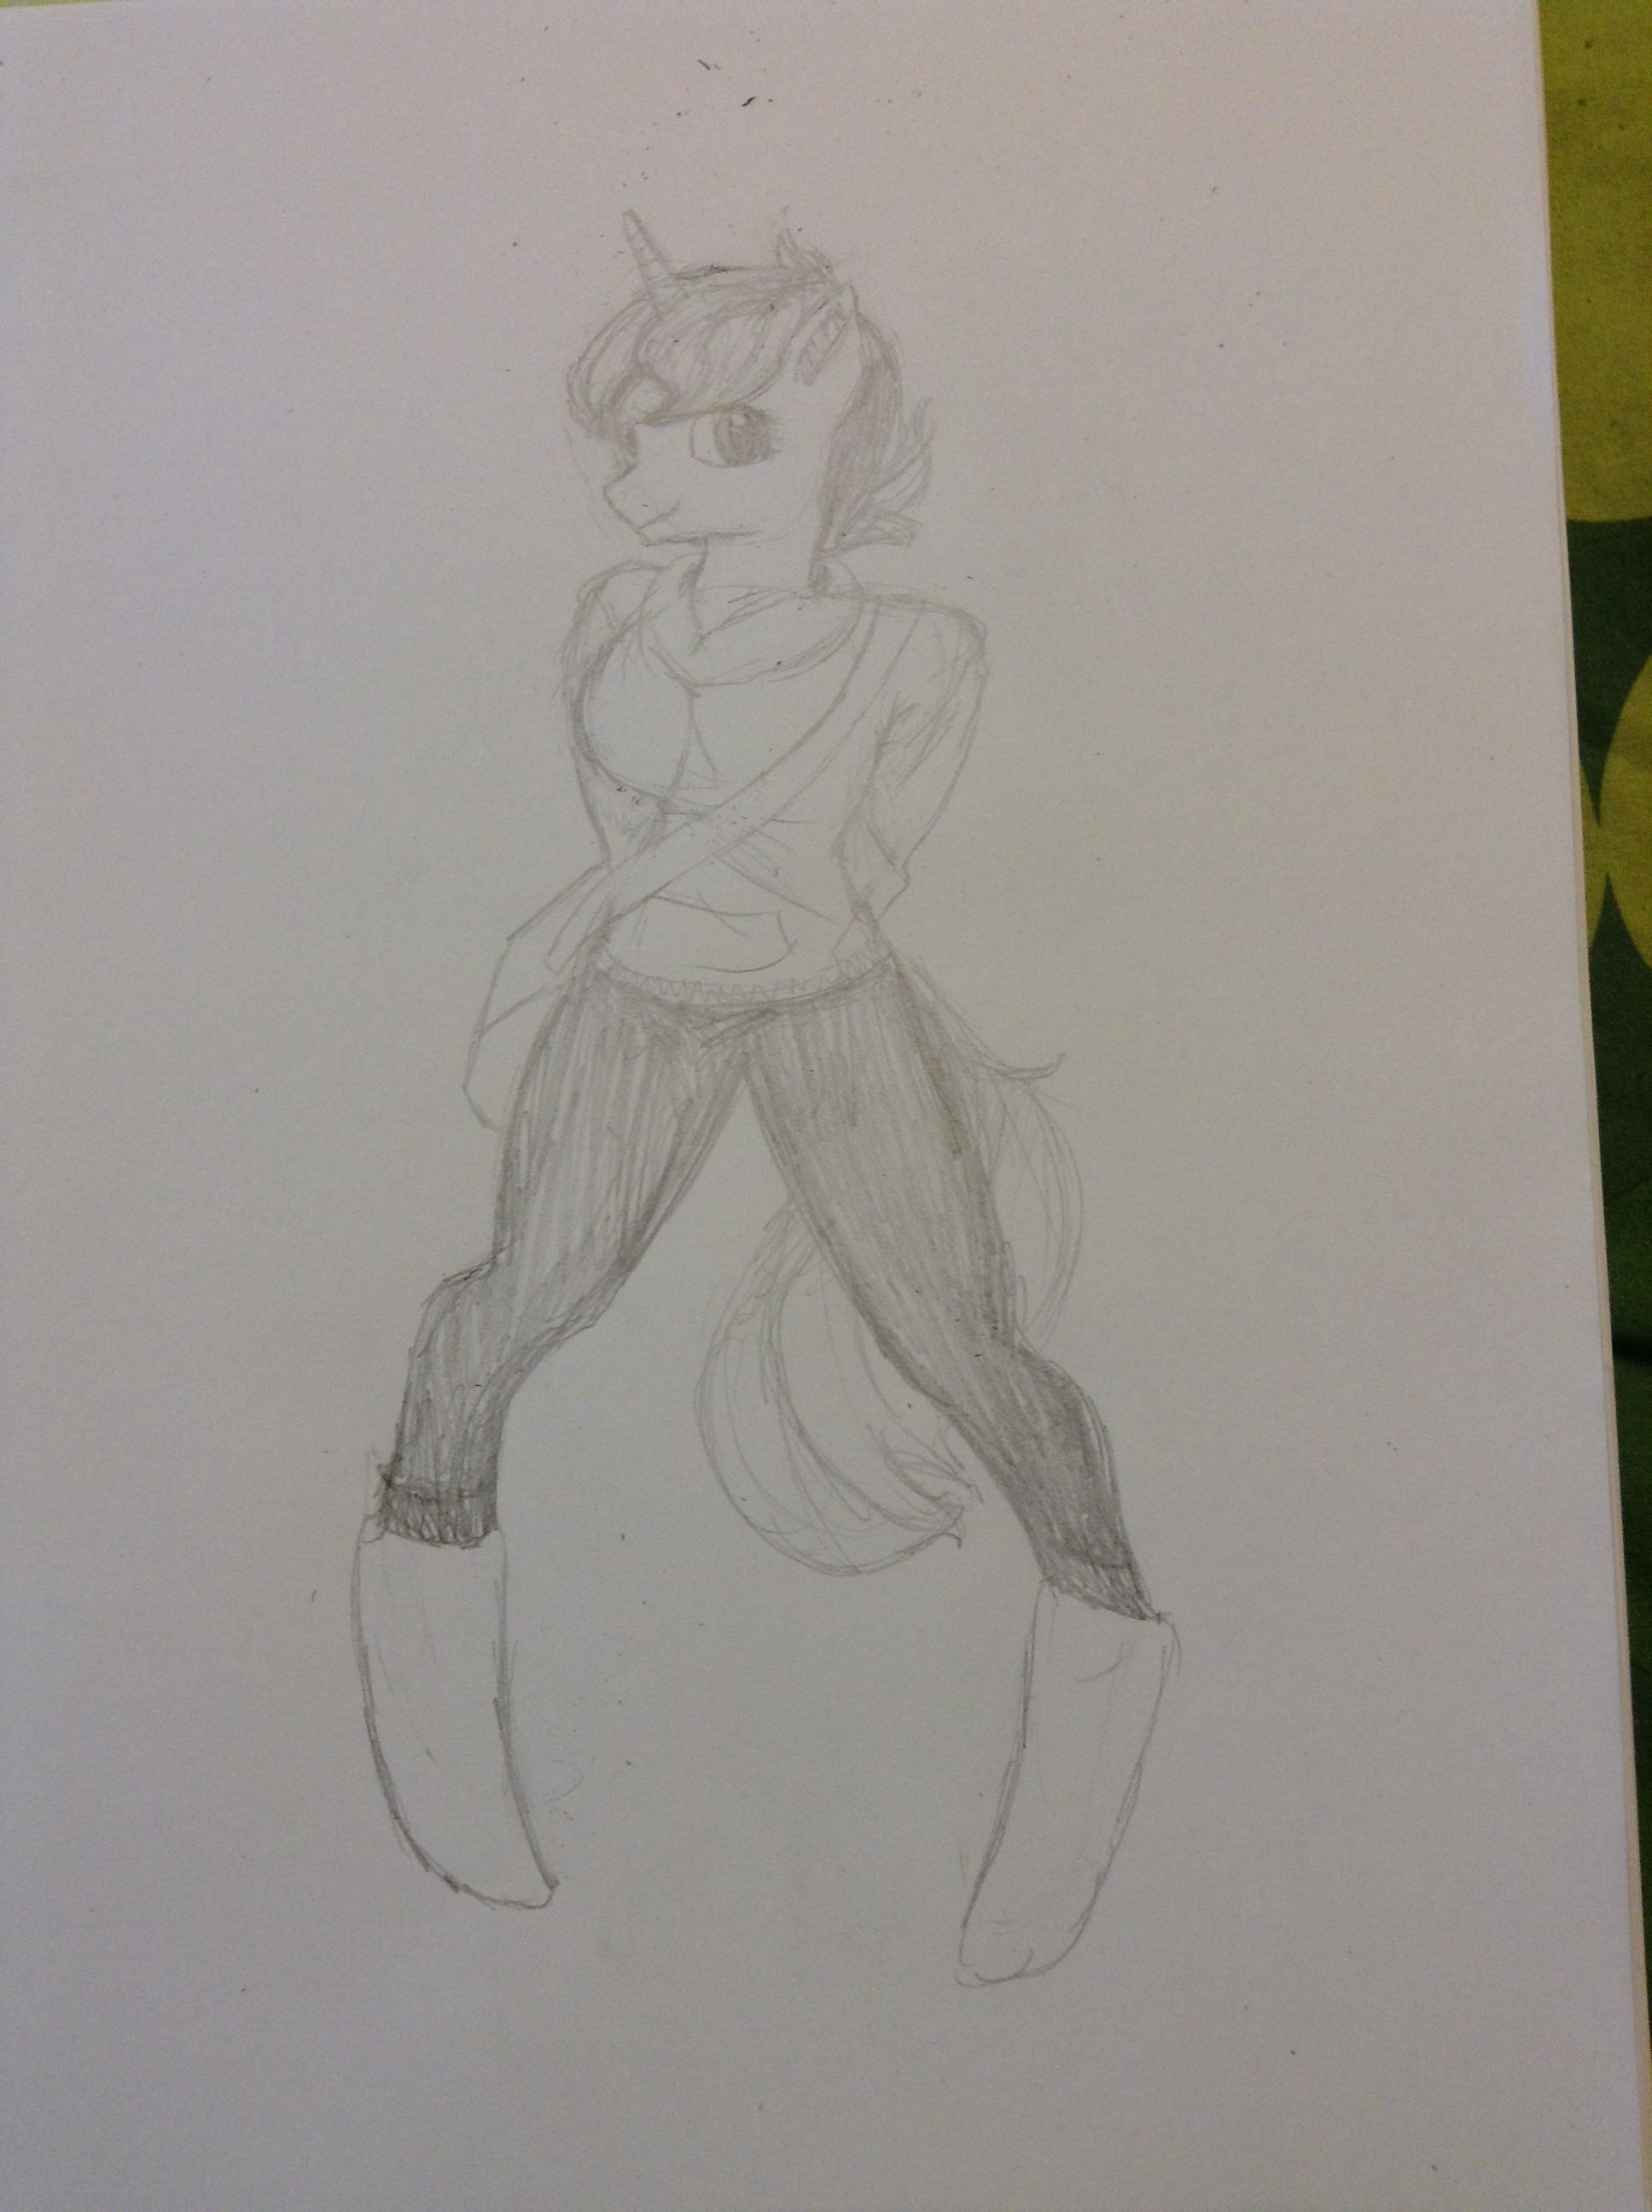 I tried something new and drew an anthro Imy. Really happy with how it turned out